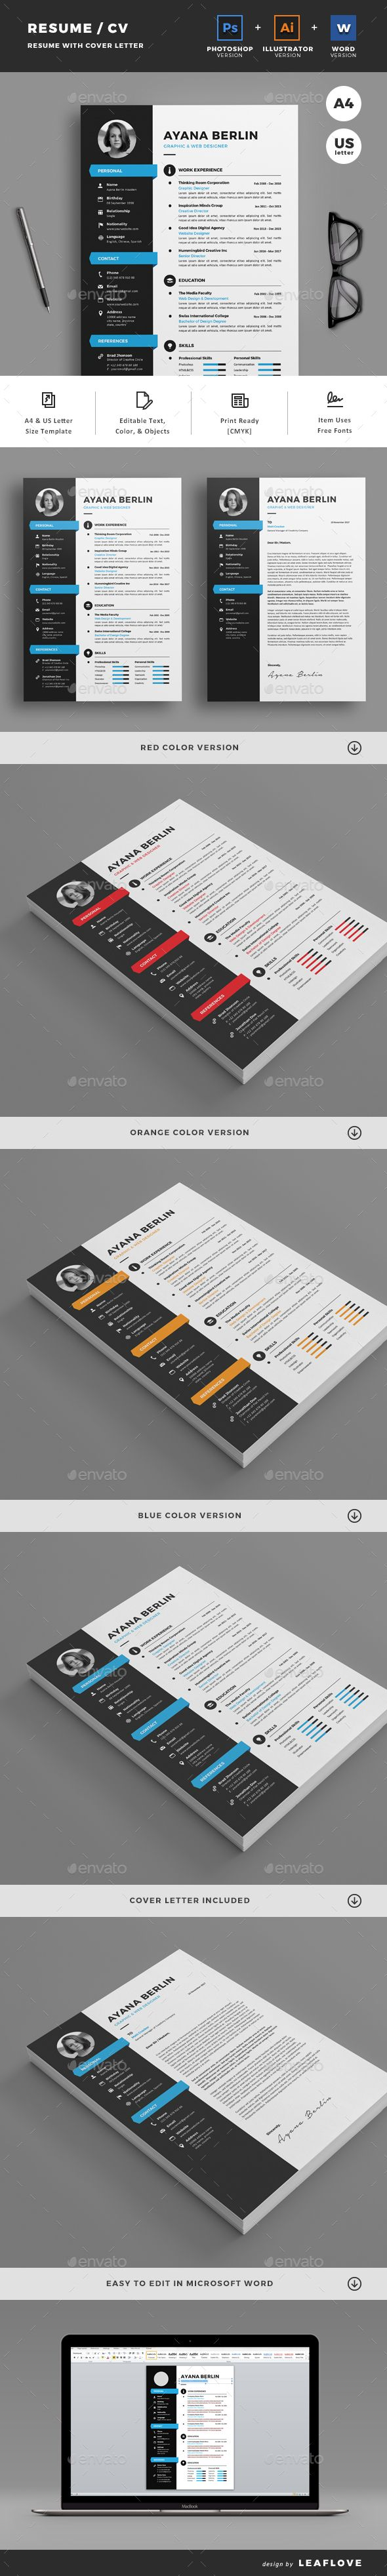 graphic design resume template%0A Professional  clean   u     creative resume template designed to make a good  impression